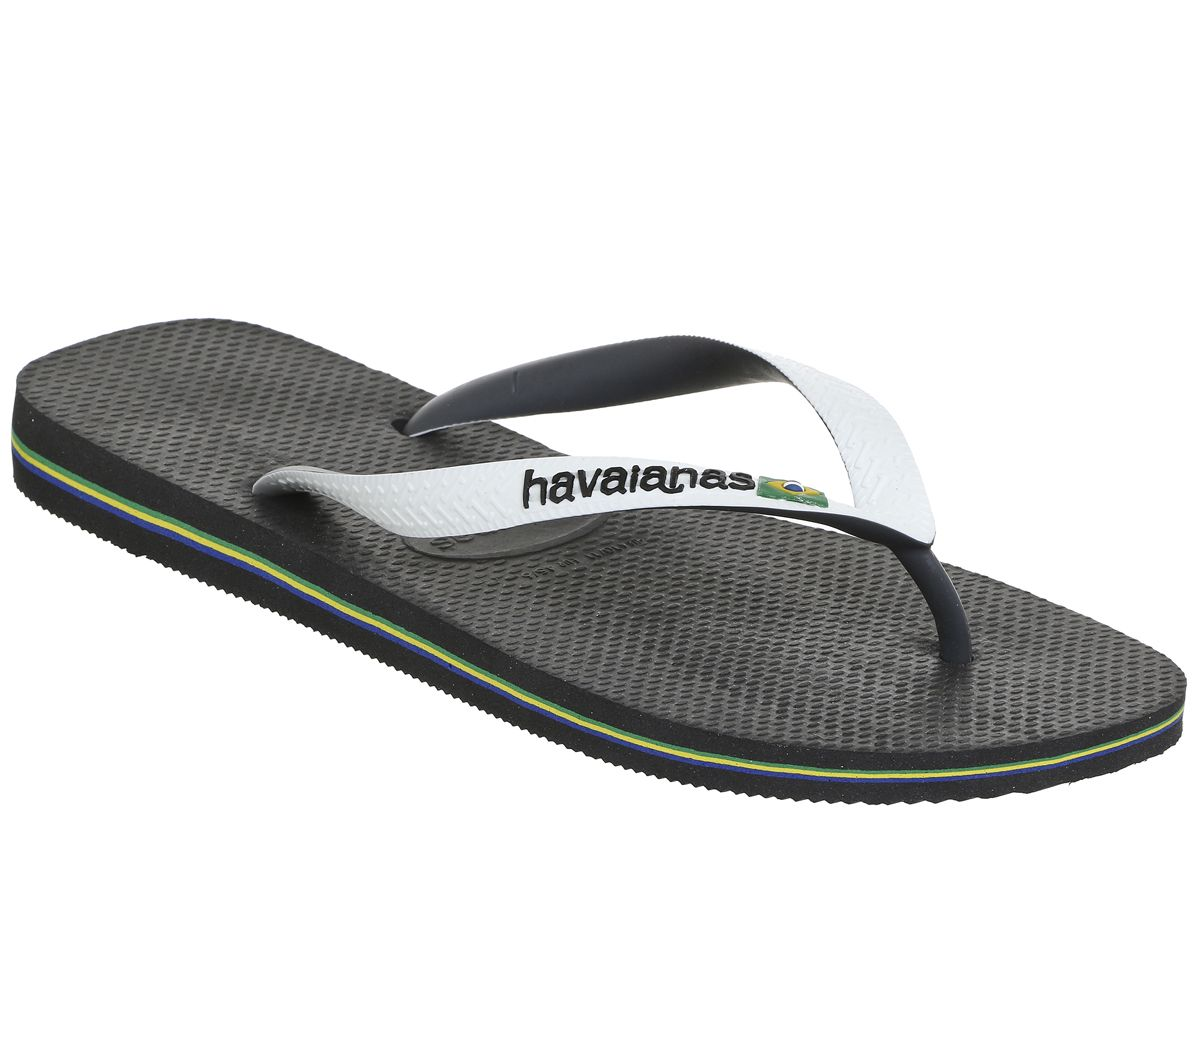 20b27ea5a Havaianas Brasil Mix Black White - Sandals